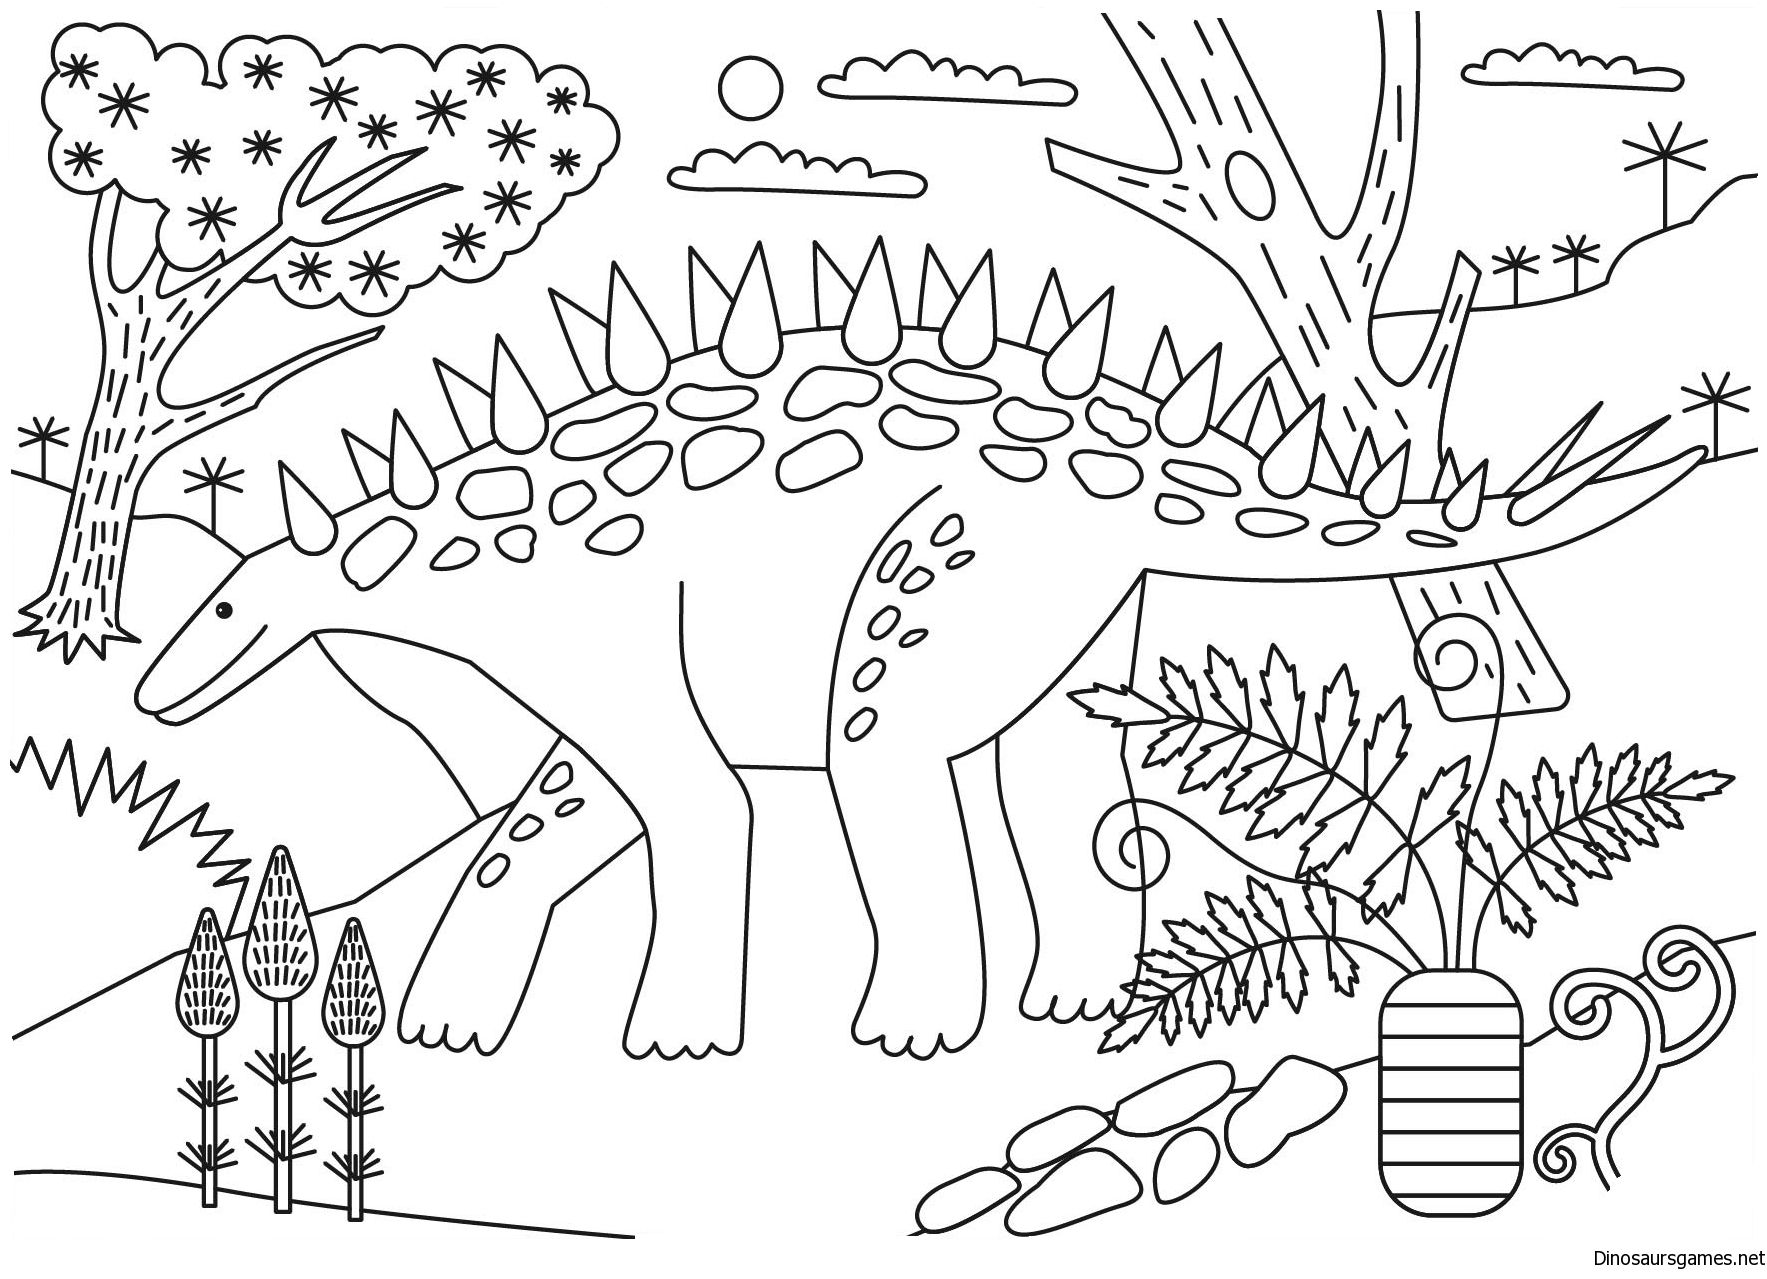 Giant Plesiosaurus Coloring Page